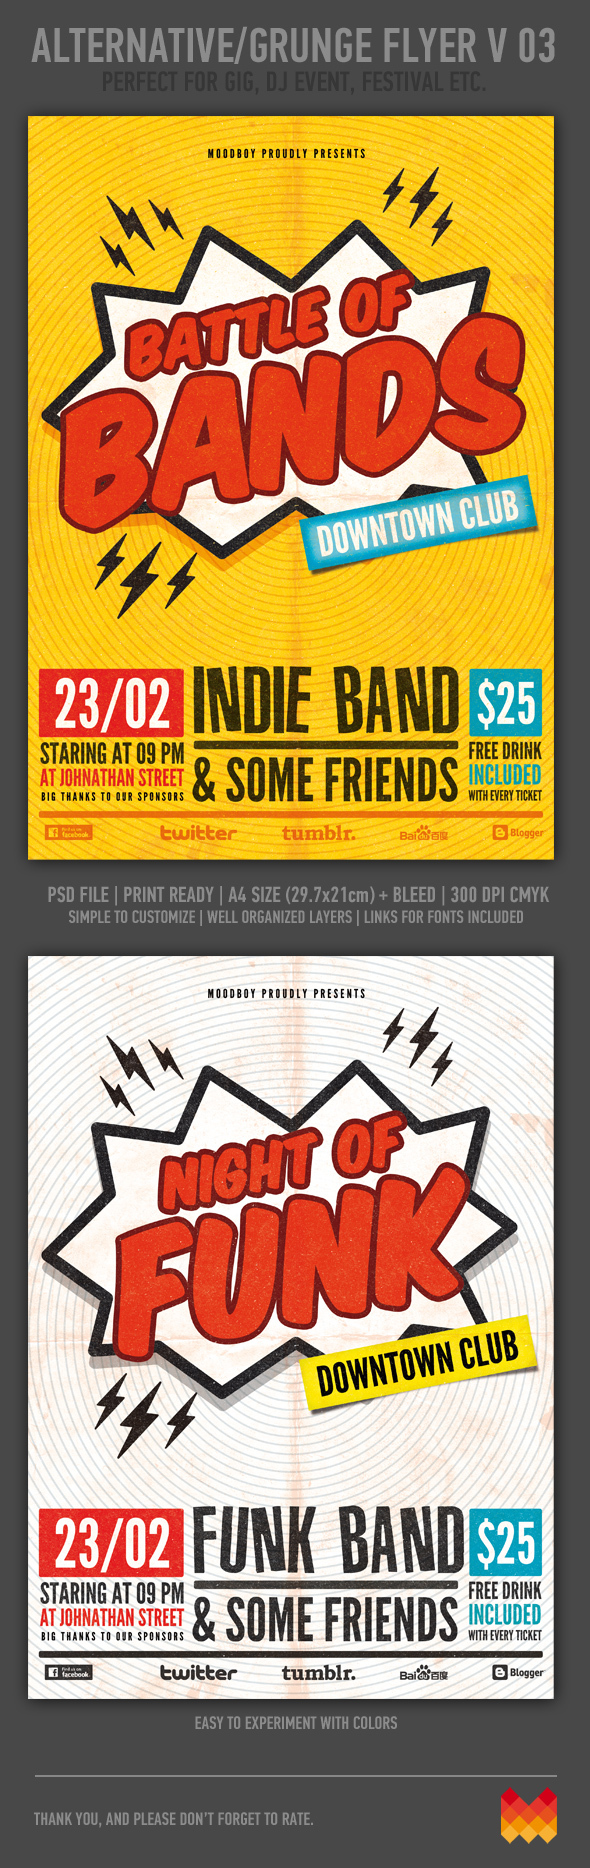 Battle Of Bands Flyer Template By Moodboy  Via Behance  Graphic